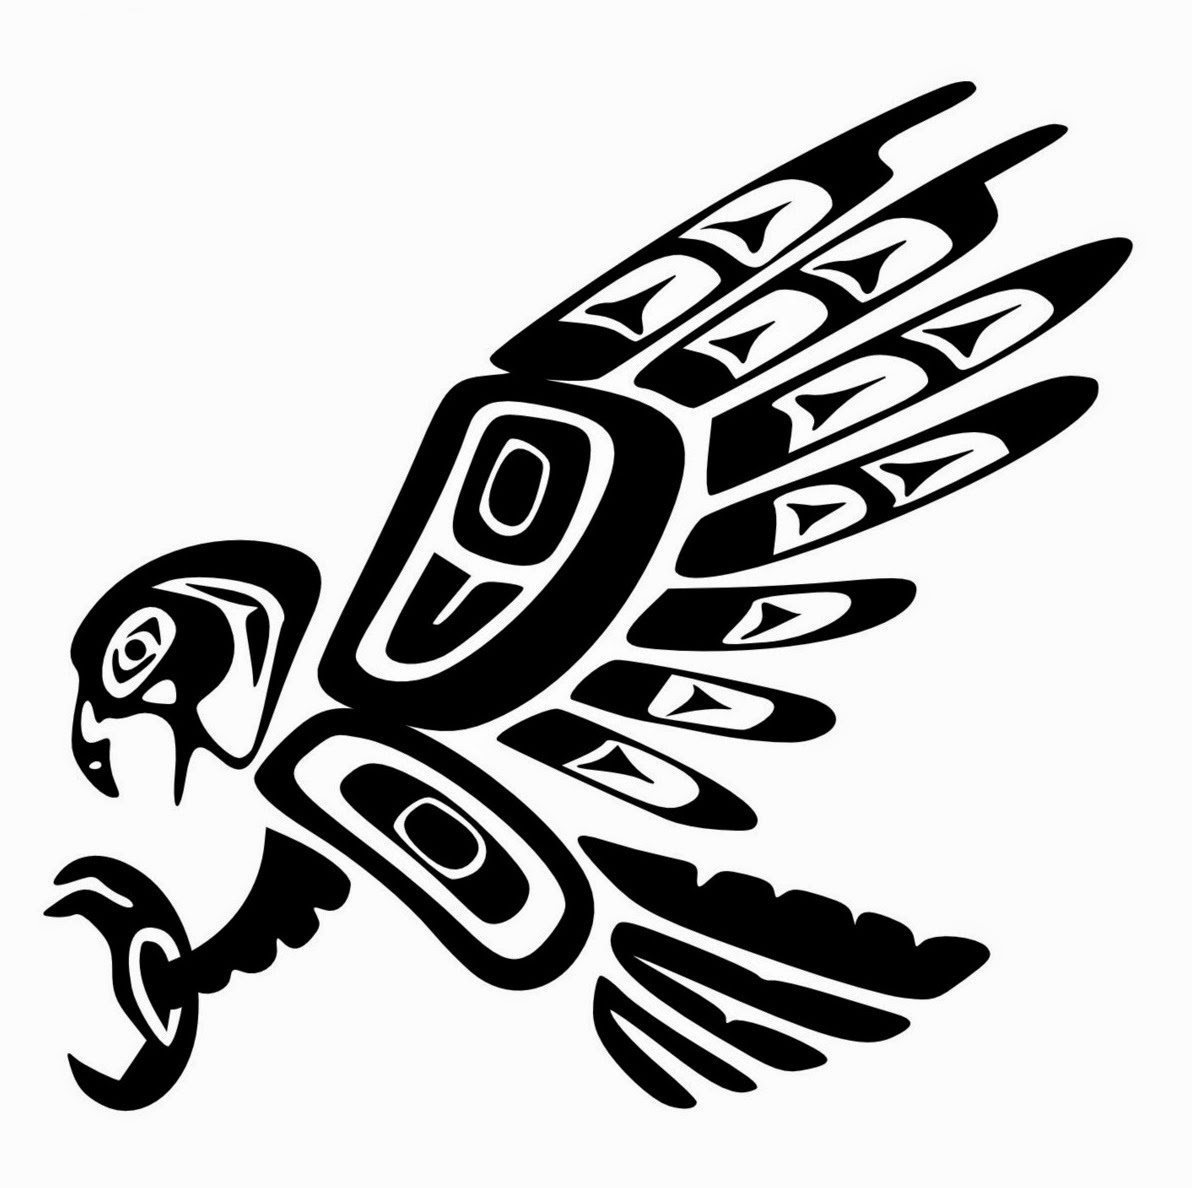 Eagle totem indian tattoo stencil